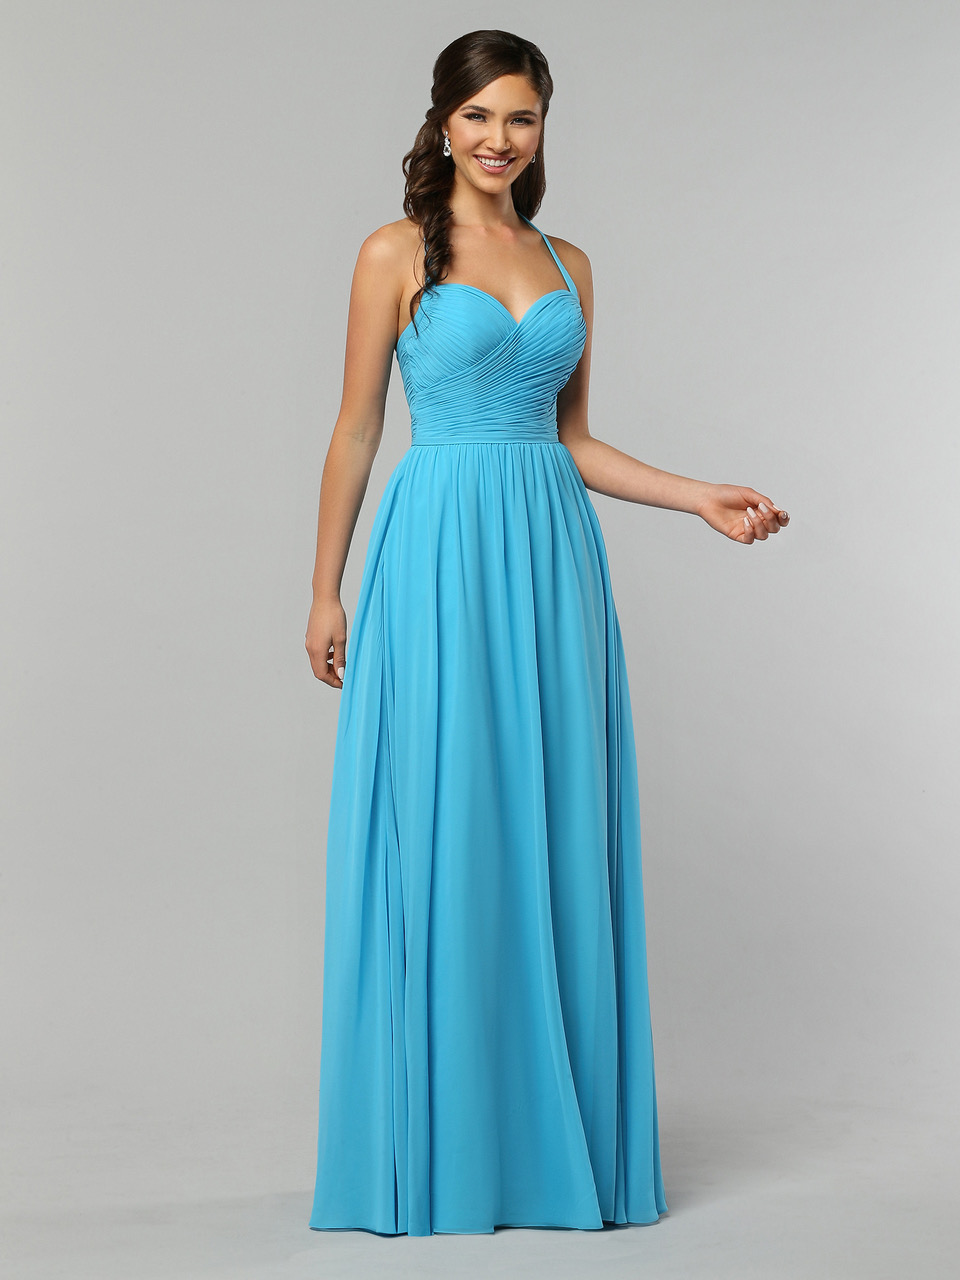 Pastel Prom & Graduation Party Dresses